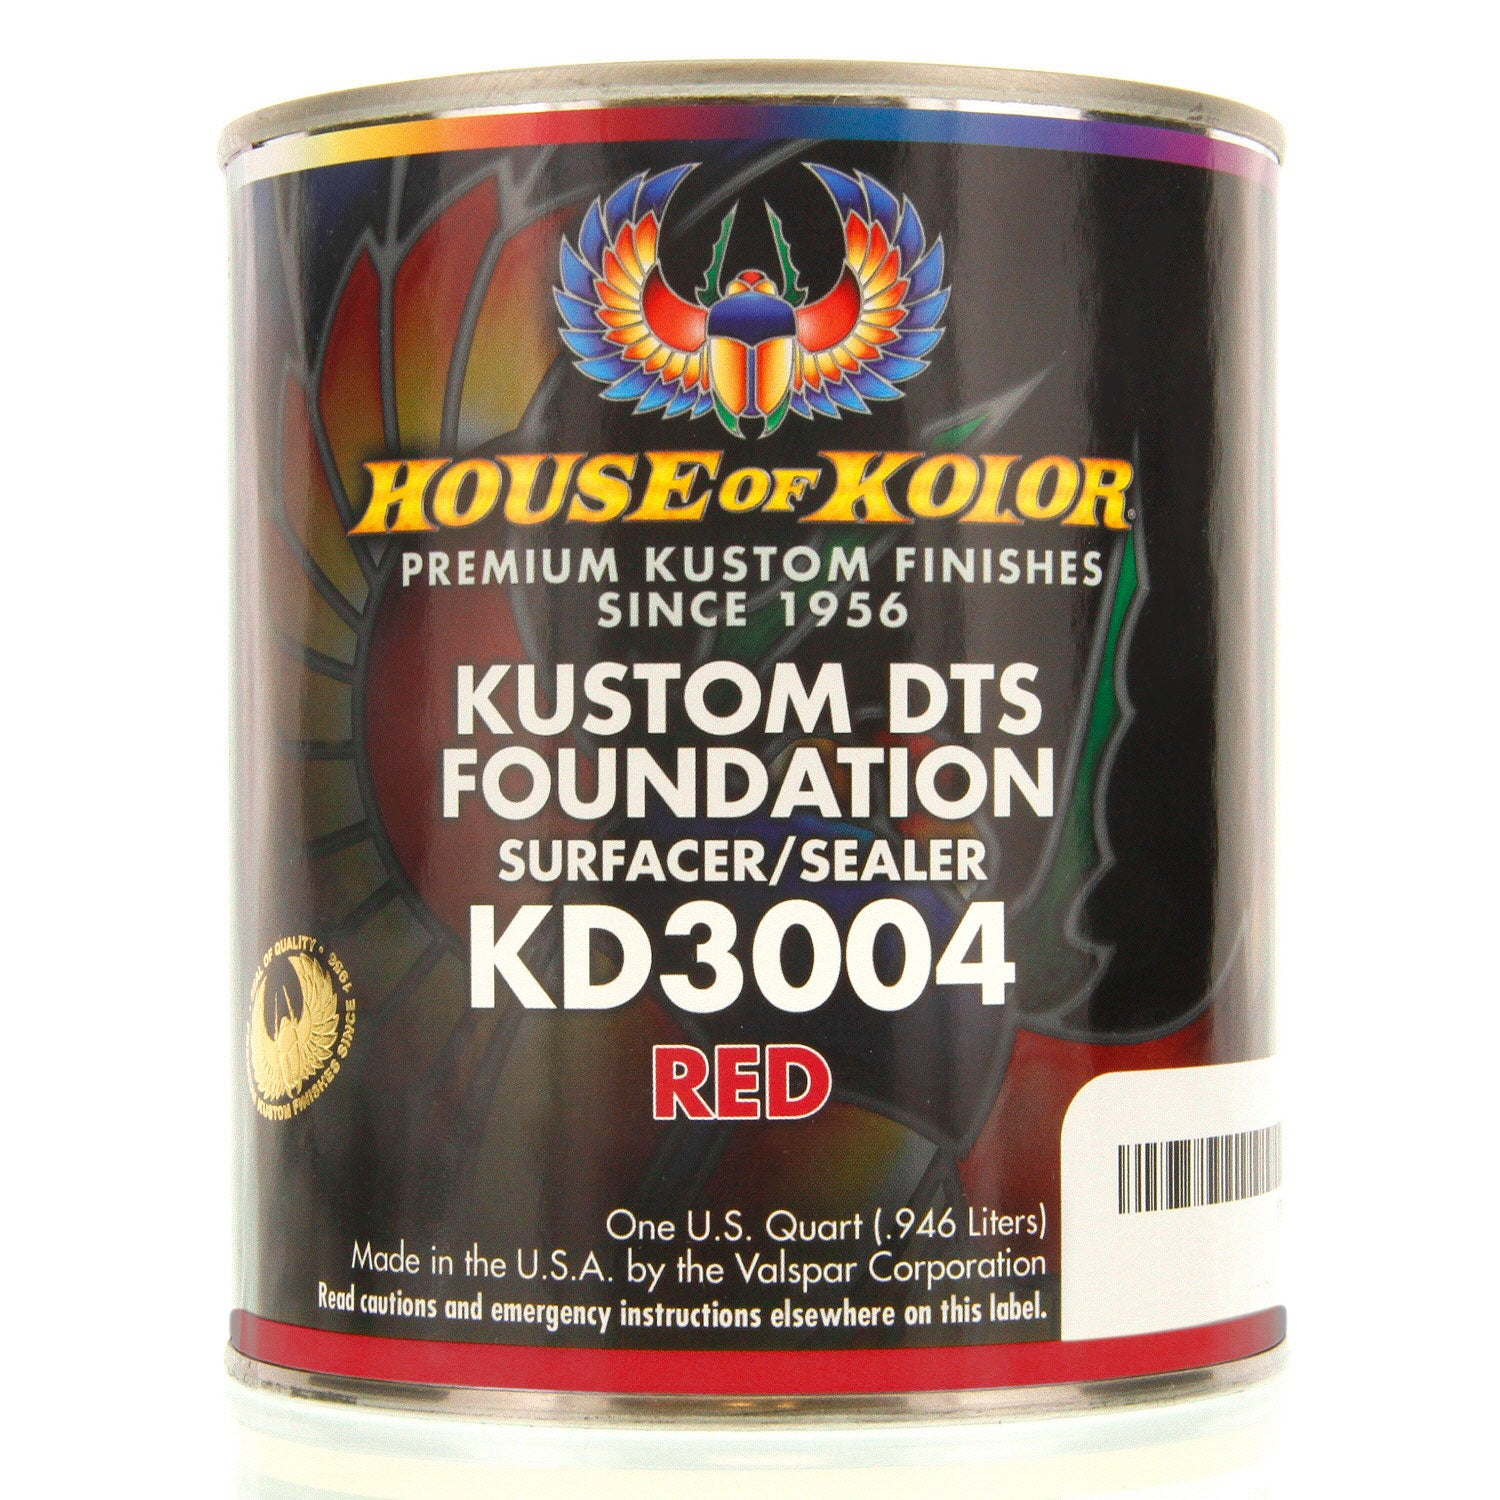 Red - Custom Dts Foundation Surfacer Sealer Epoxy Primer, 1 Quart House of Kolor